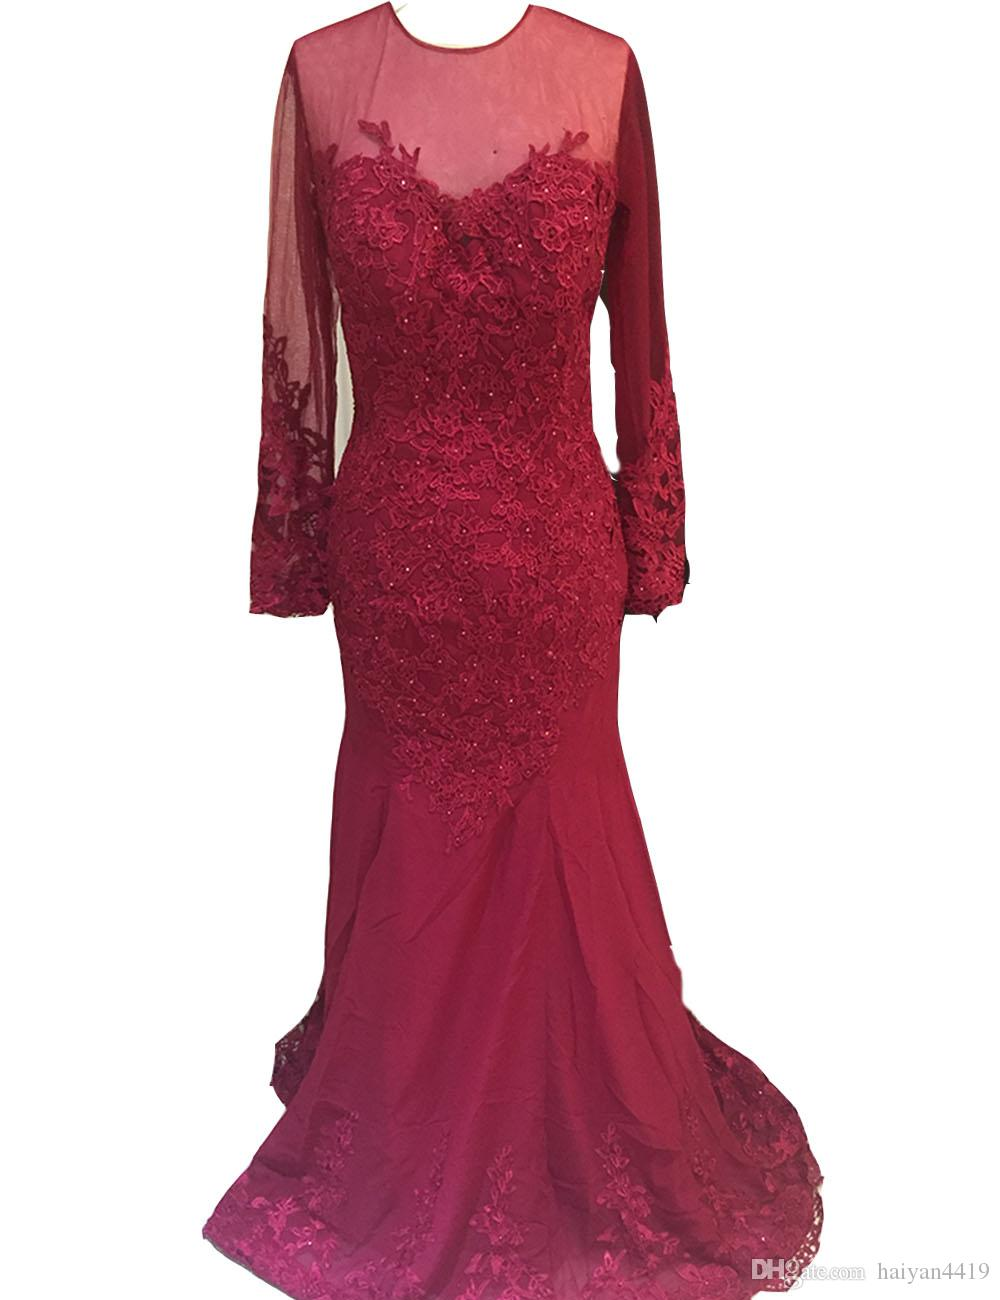 2017 Cheap Prom Dresses Jewel Neck Mermaid Burgundy Chiffon With Lace Appliques Beaded Long Sleeves Evening Dress Party Pageant Formal Gowns